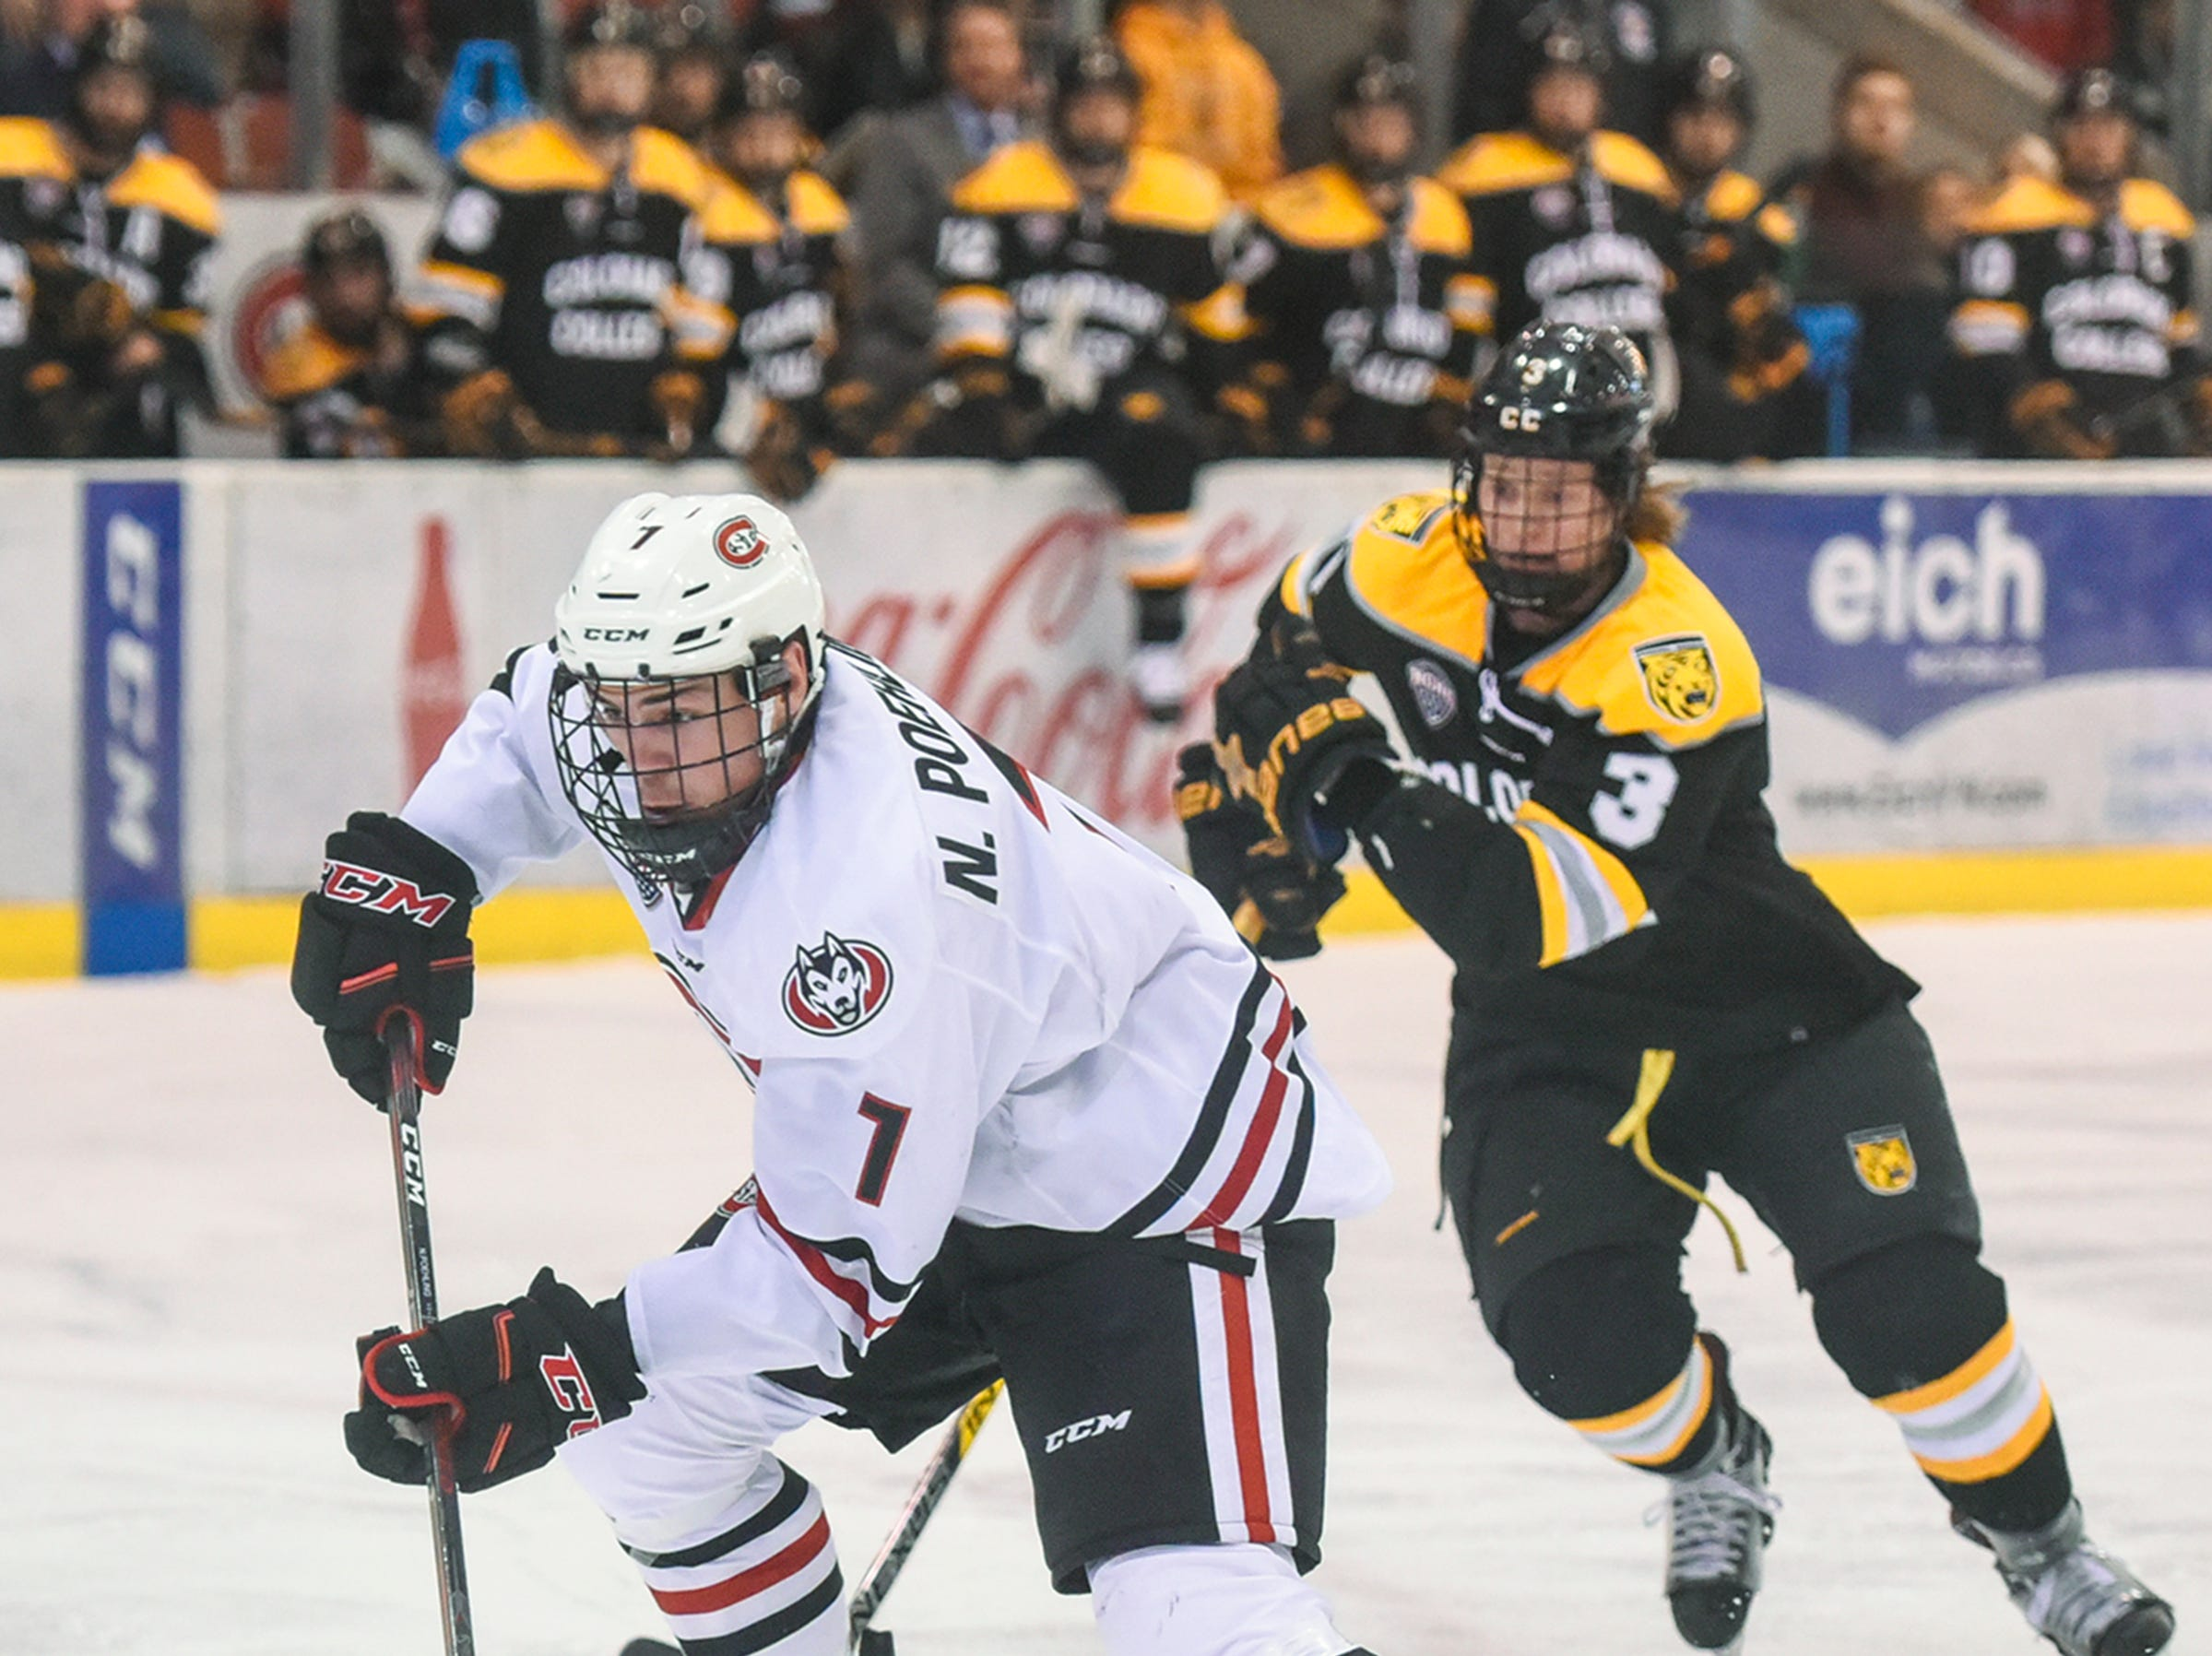 St. Cloud State's Nick Poehling gets past Kristian Blumenschlein of Colorado College during the first period of the Friday, Feb. 8, game at the Herb Brooks National Hockey Center in St. Cloud.